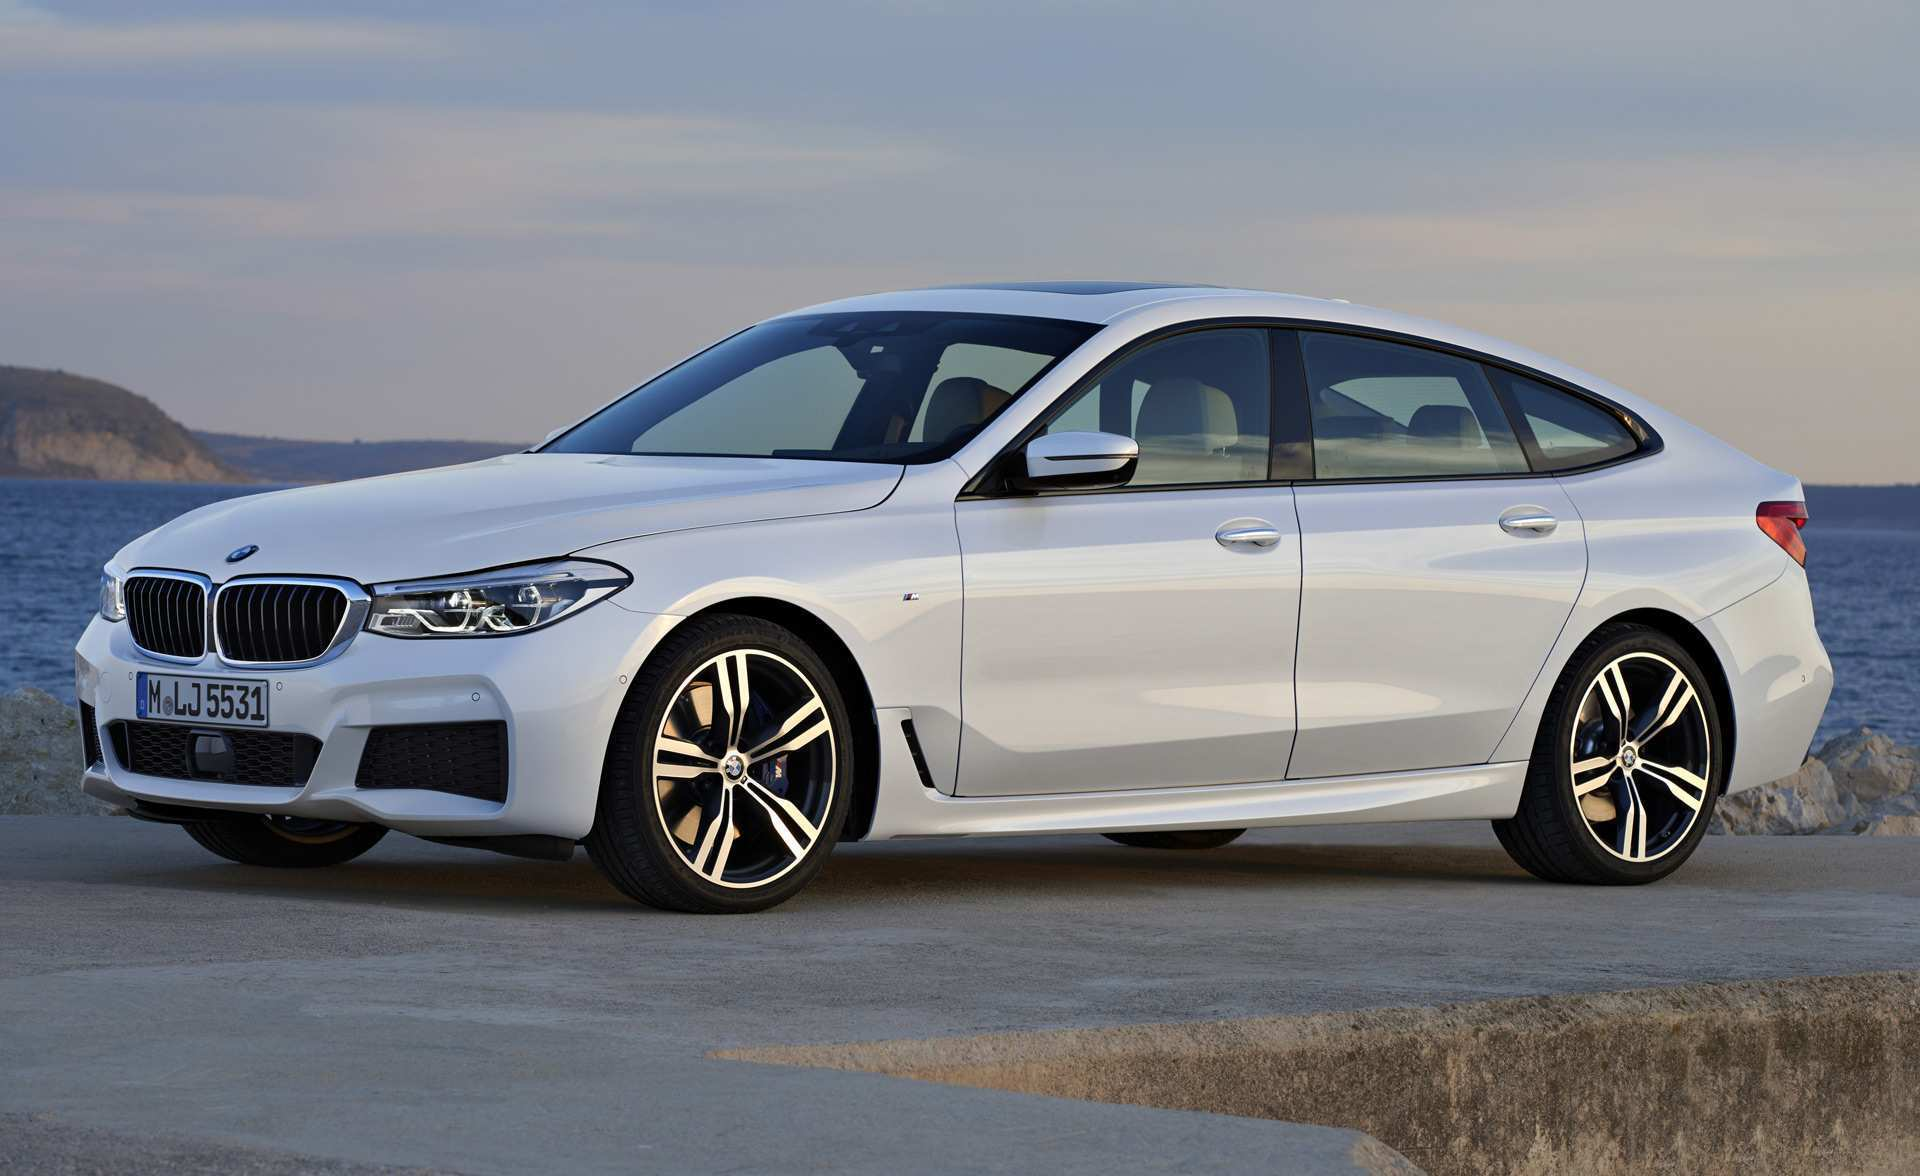 70 The 2020 BMW 6 Series Review